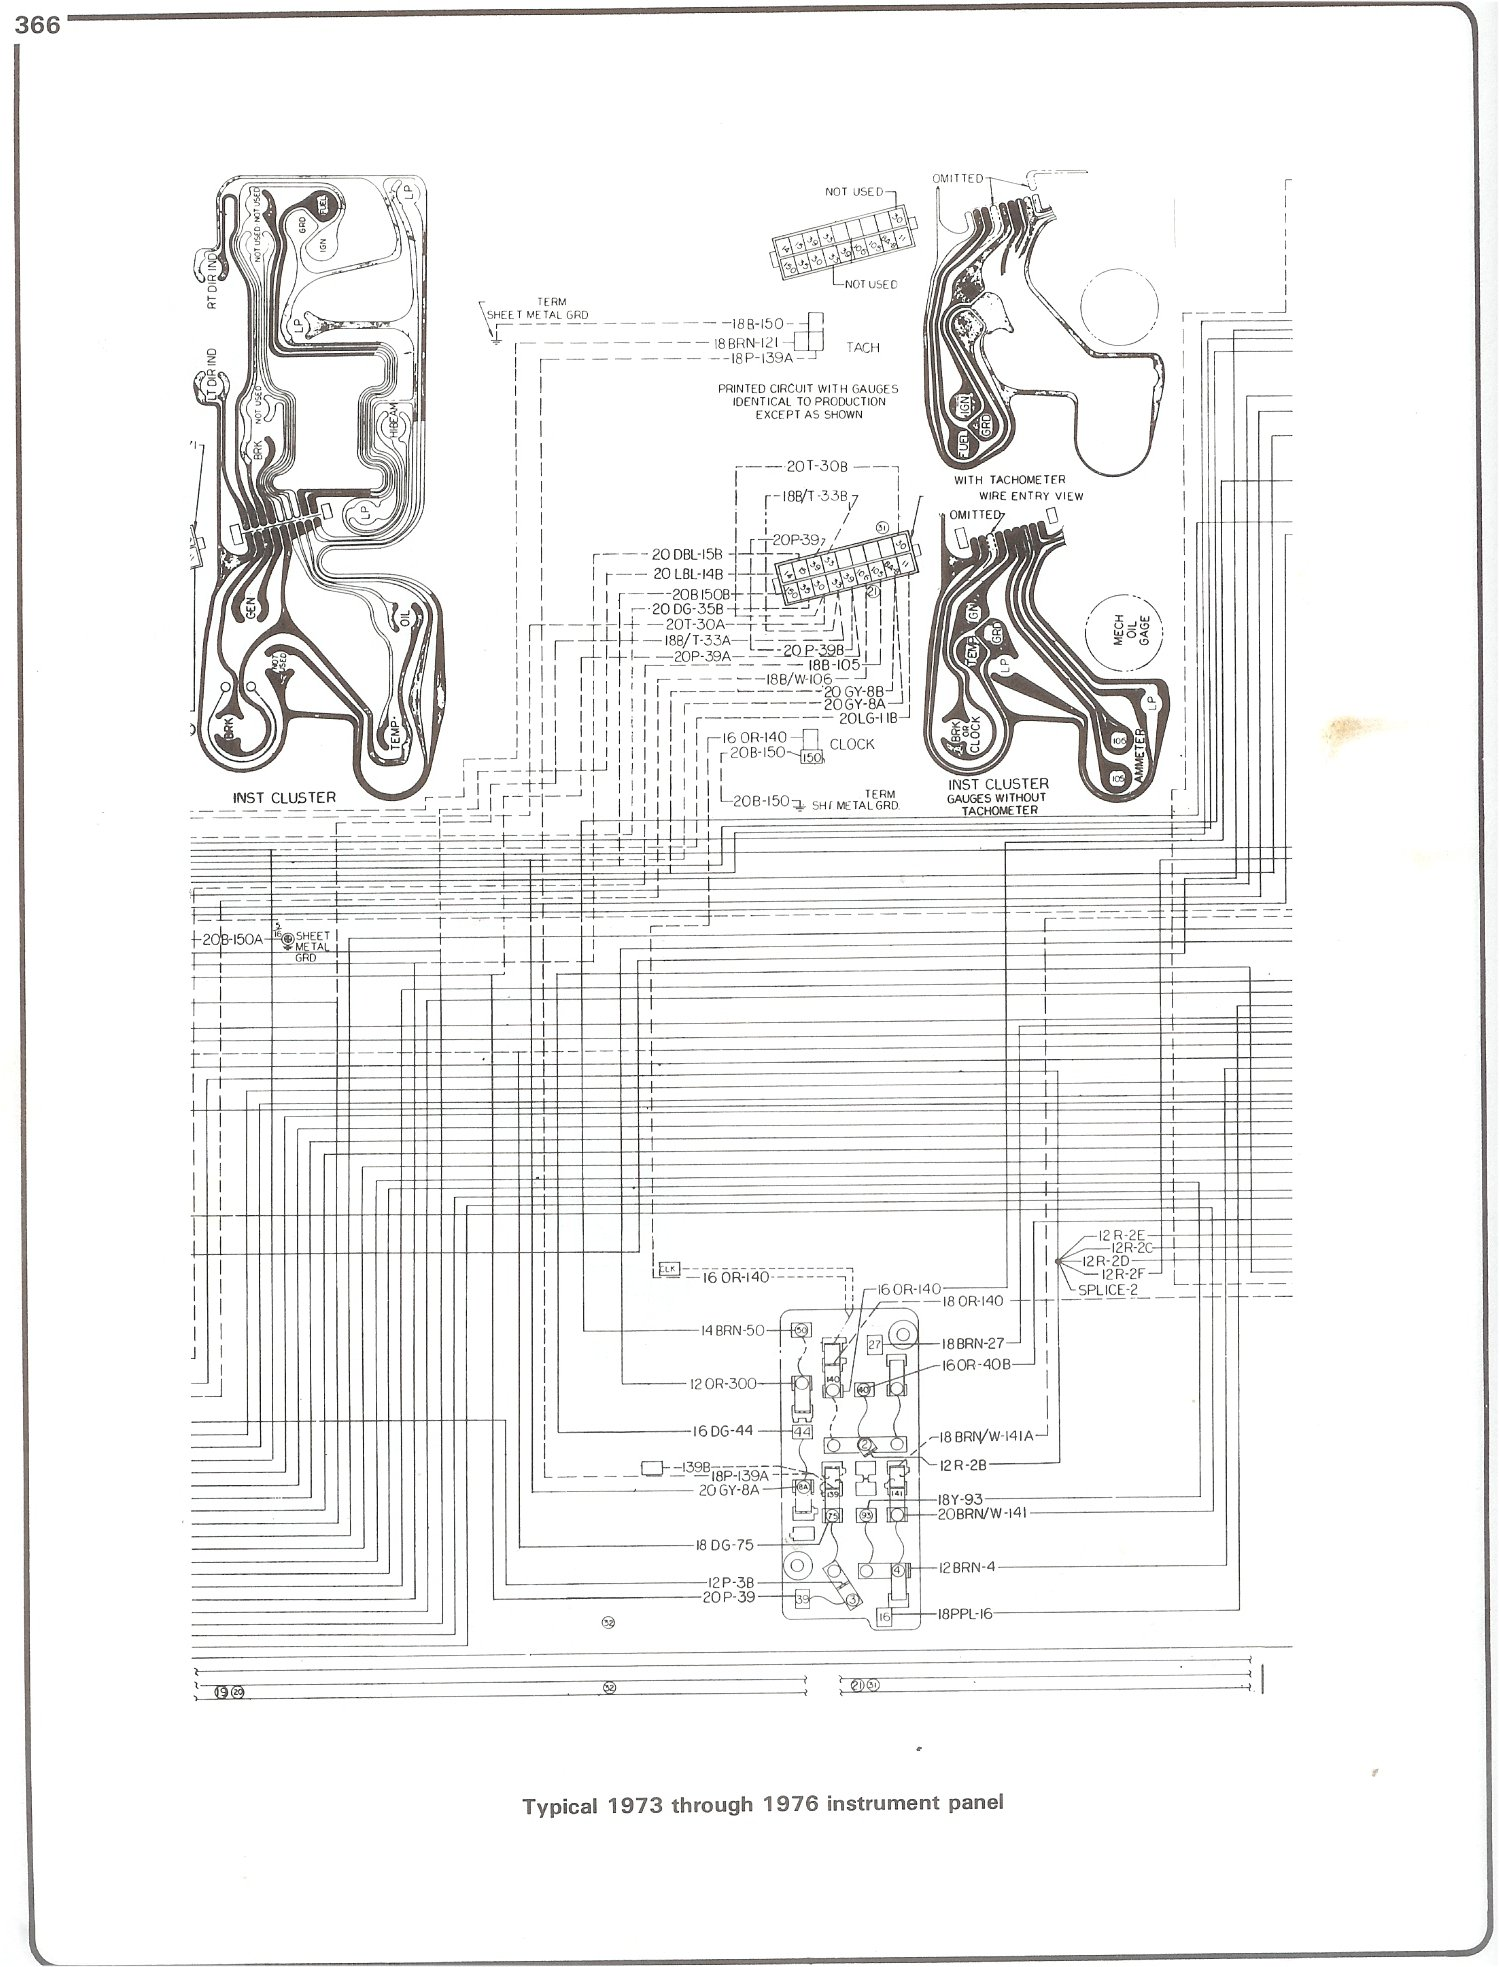 73 76_instrument complete 73 87 wiring diagrams 1970 Chevy C10 Fuse Box Diagram at gsmx.co